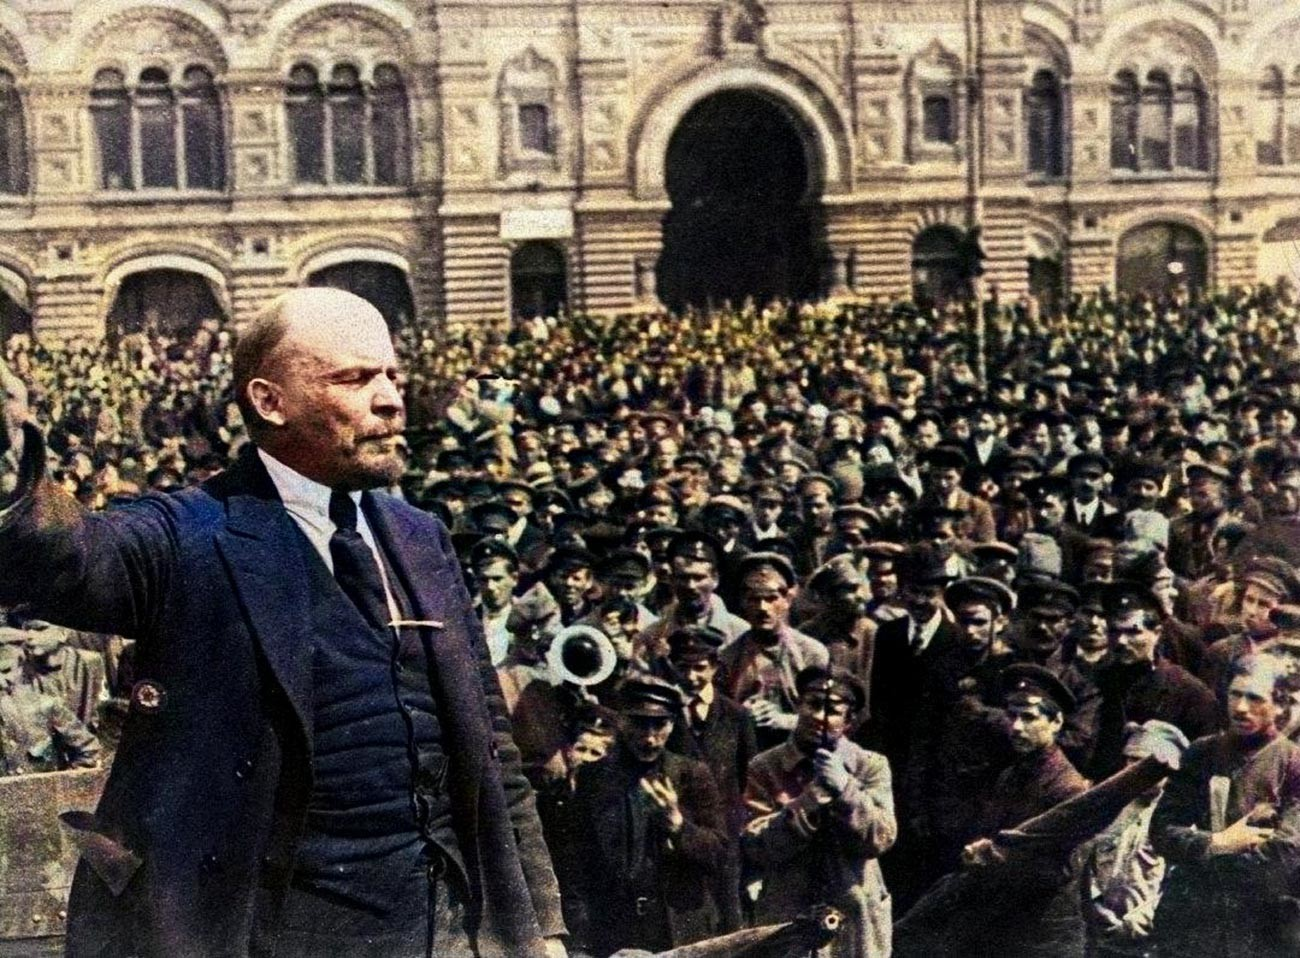 Vladimir Lenin speaking in Moscow